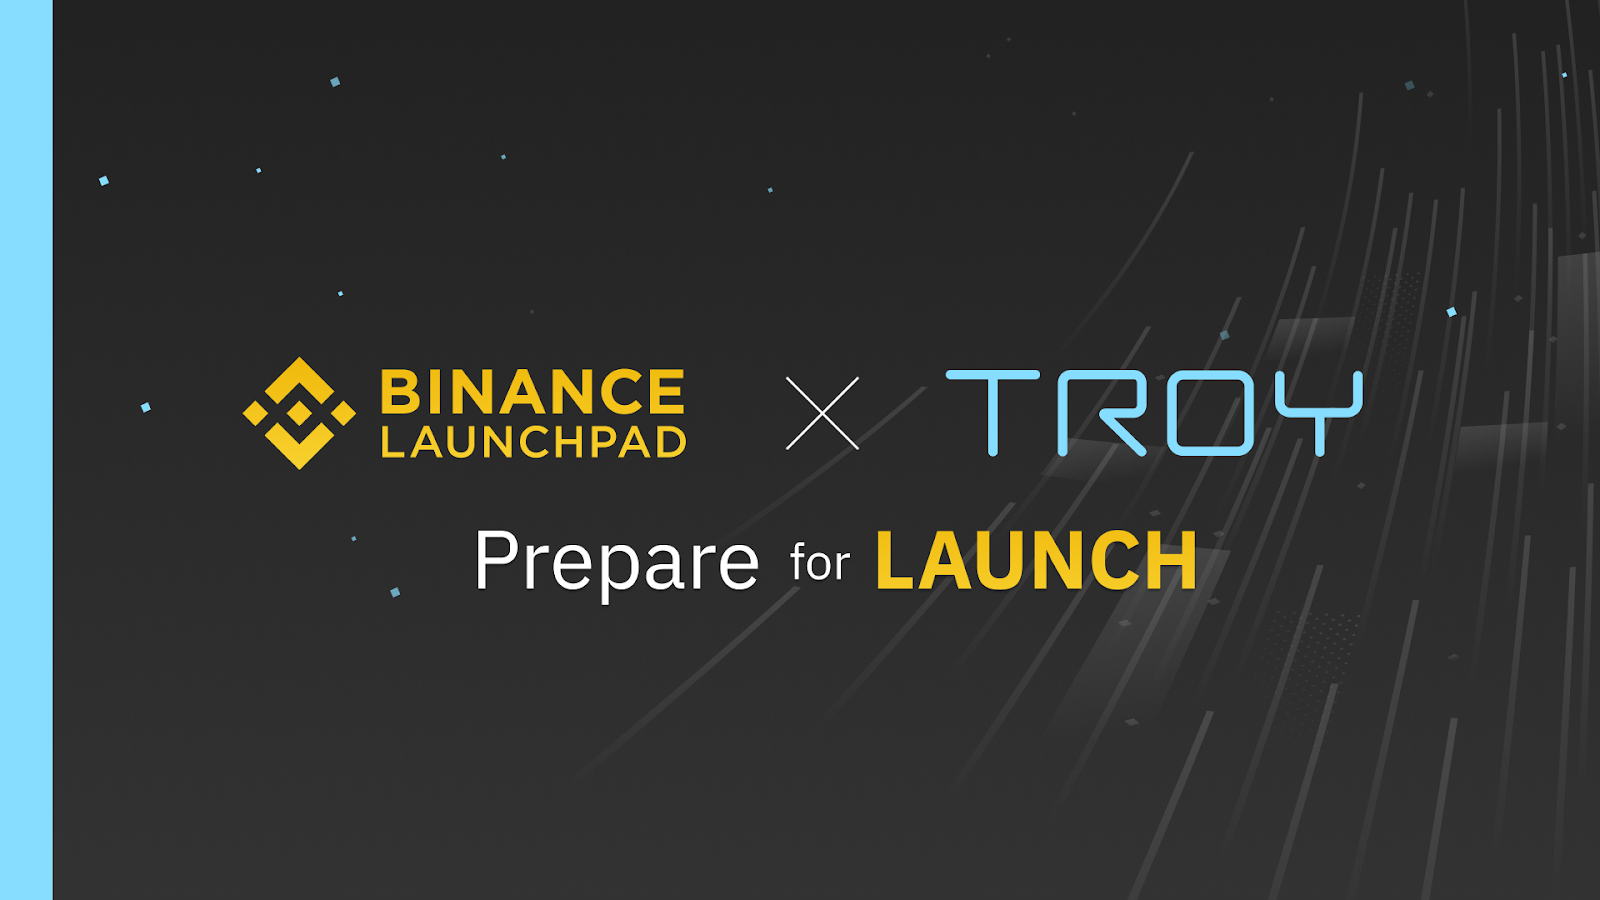 Binance Launchpad TROY Network